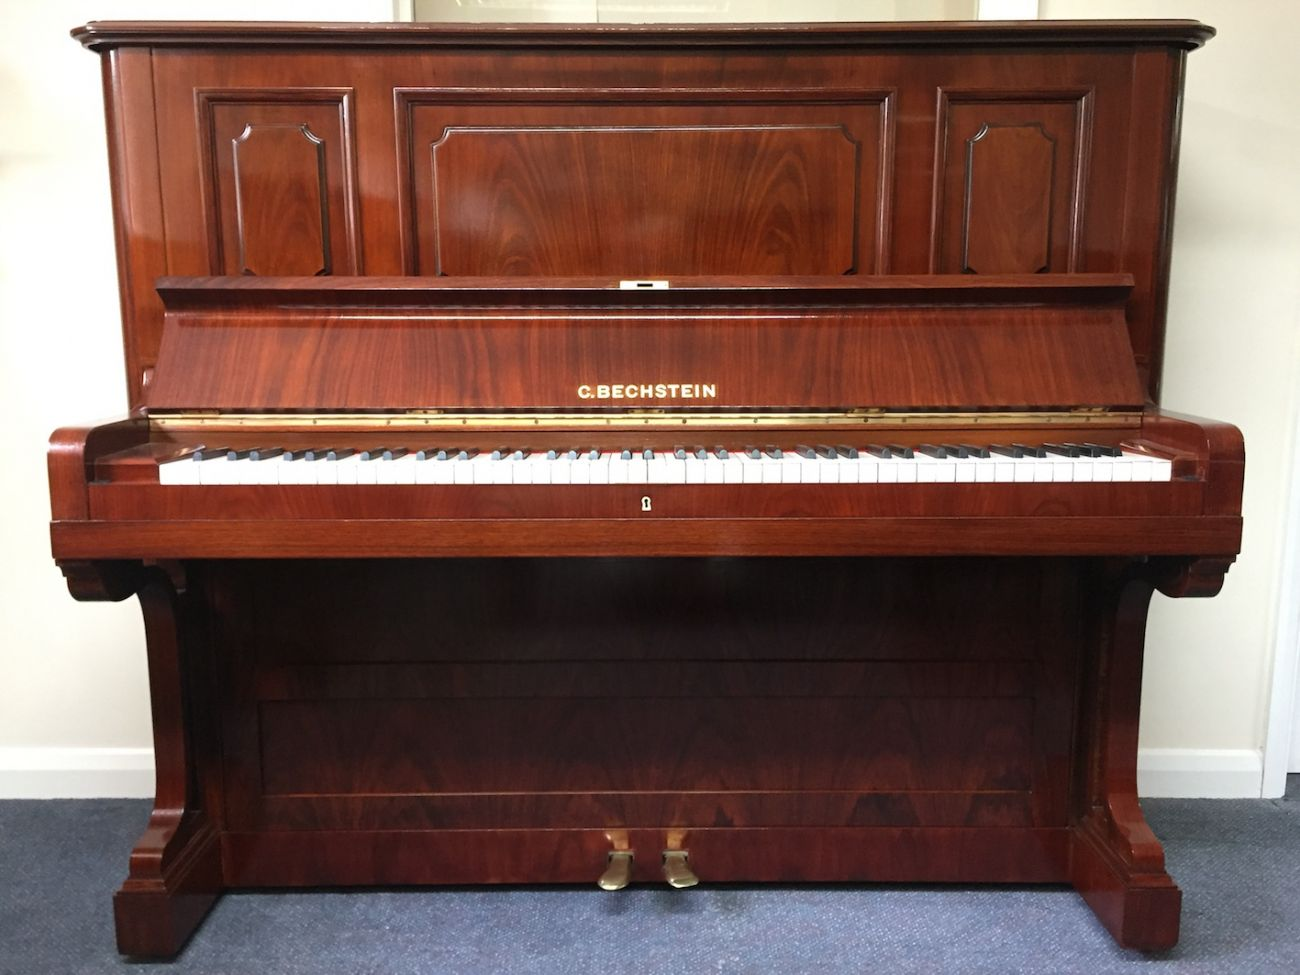 The Best Piano Brands in the World